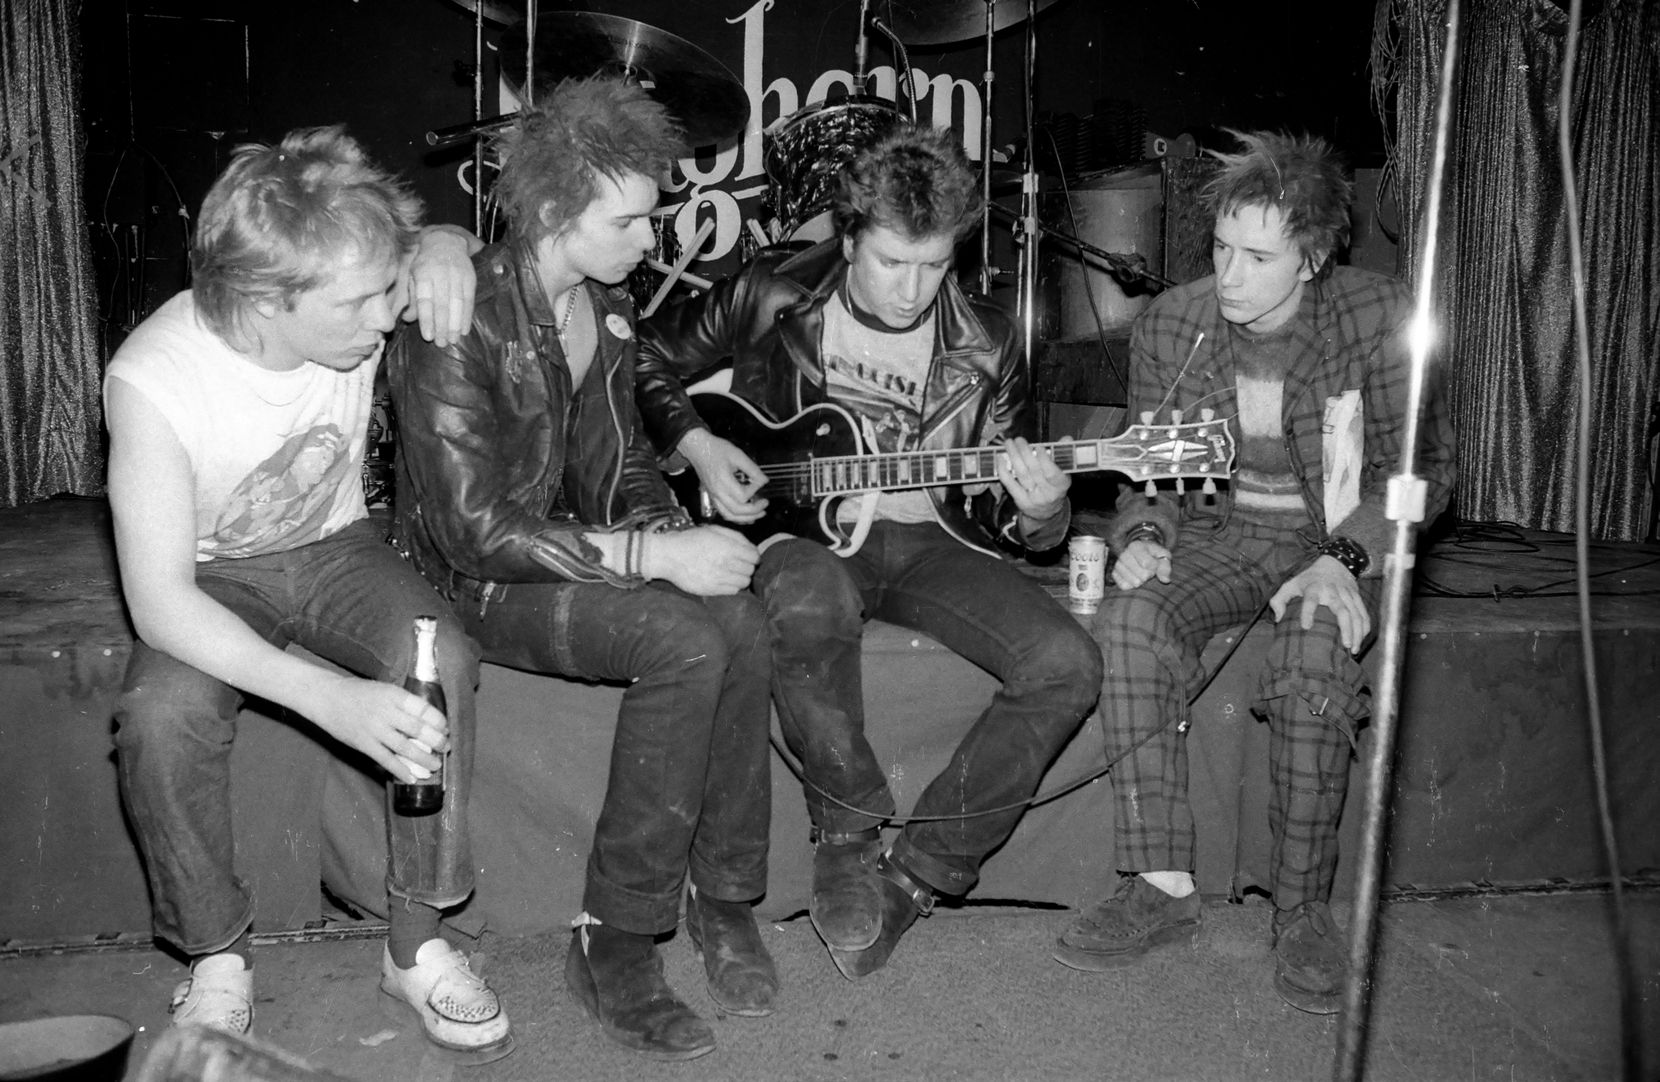 The Sex Pistols posed on stage at The Longhorn Ballroom, Dallas, during their final tour on January 10, 1978 L-R Paul Cook, Sid Vicious, Steve Jones, John Lydon (Johnny Rotten).